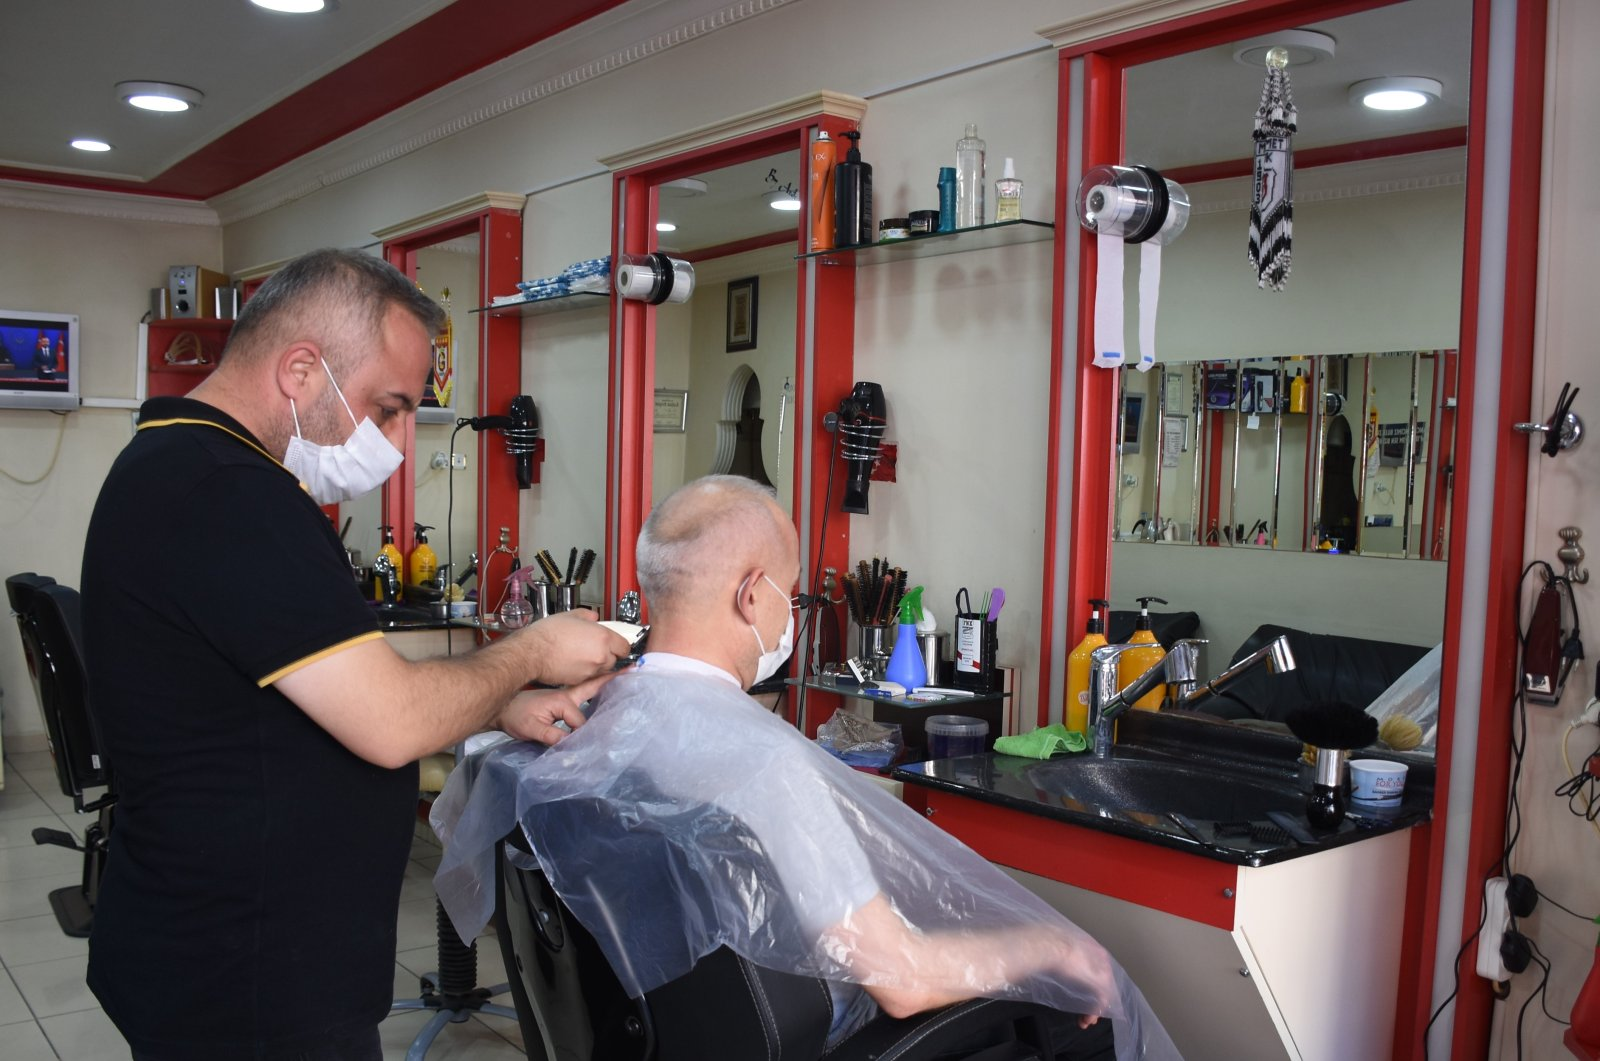 A barber cuts the hair of a customer in a barbershop certified as safe, in Kırıkkale, central Turkey, Aug. 17, 2020. (AA Photo)